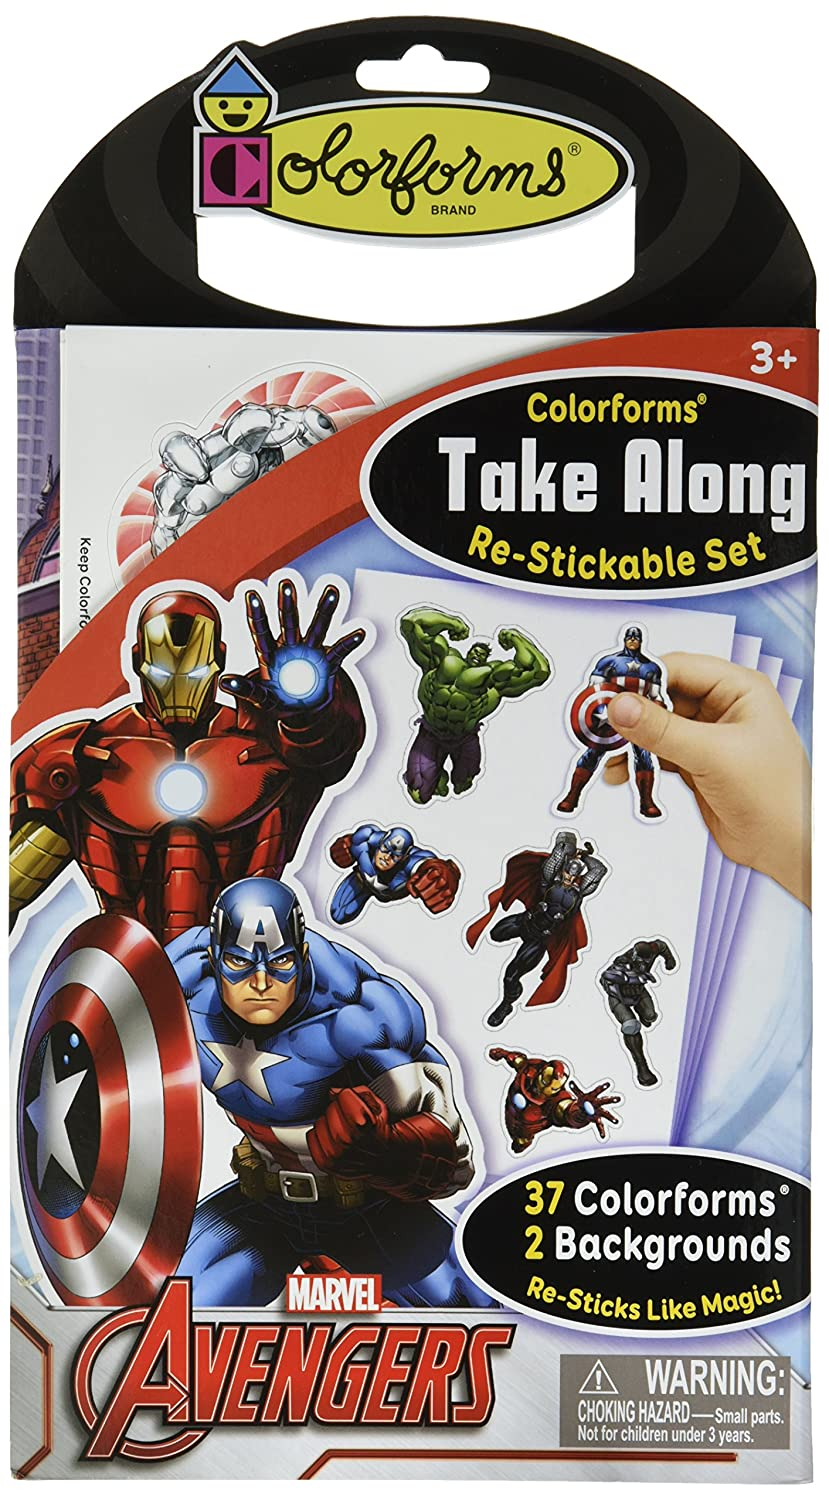 Colorforms Brand Avengers Take Along Restickable Set